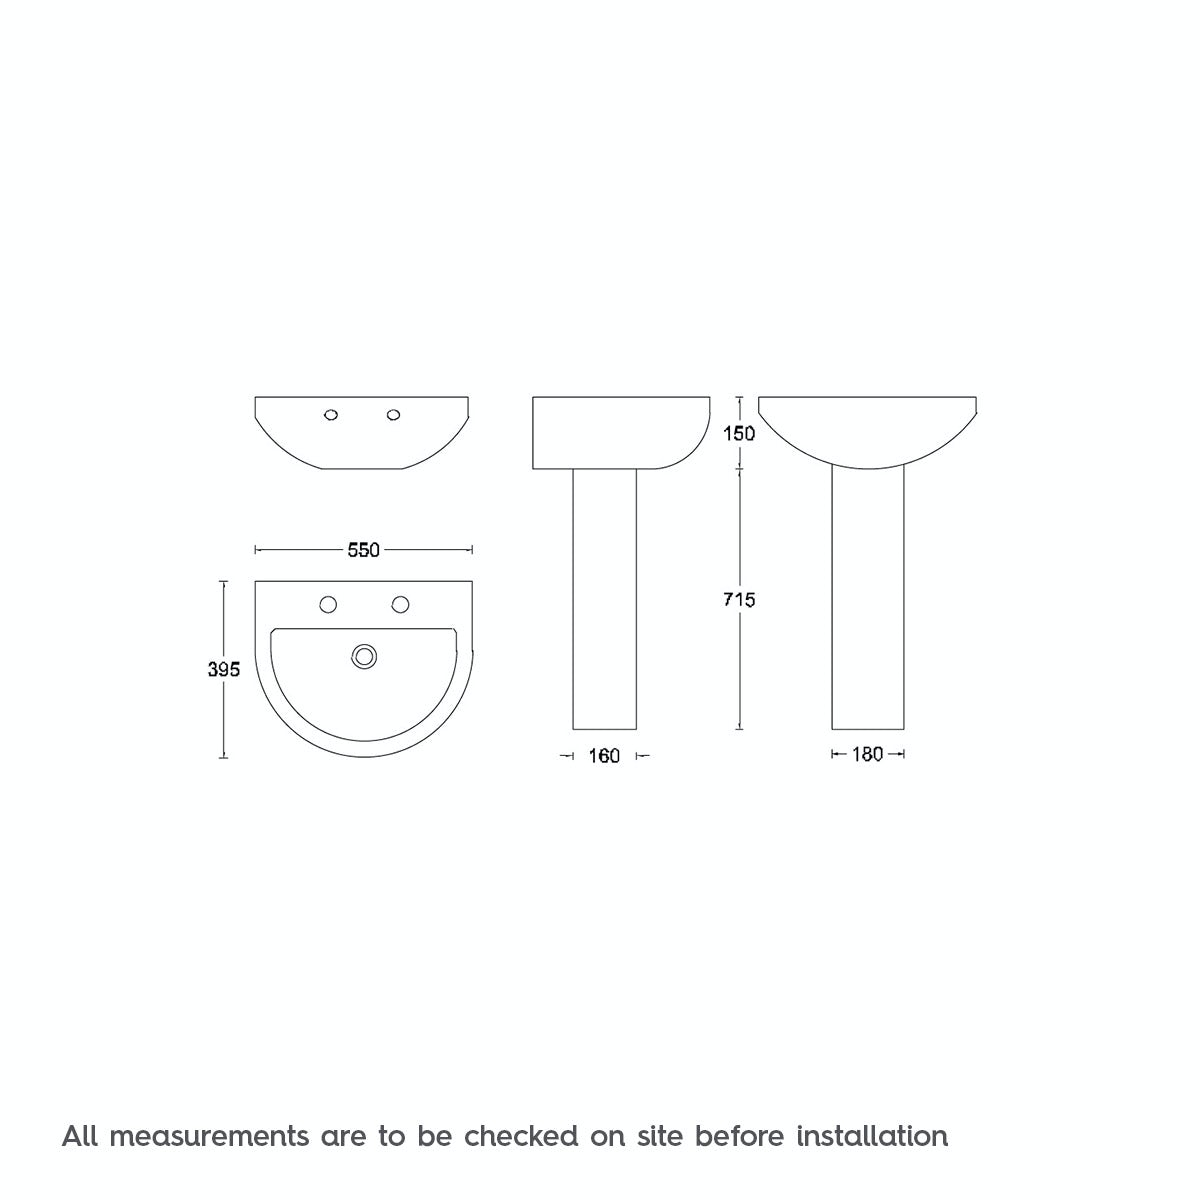 Dimensions for 550mm basin